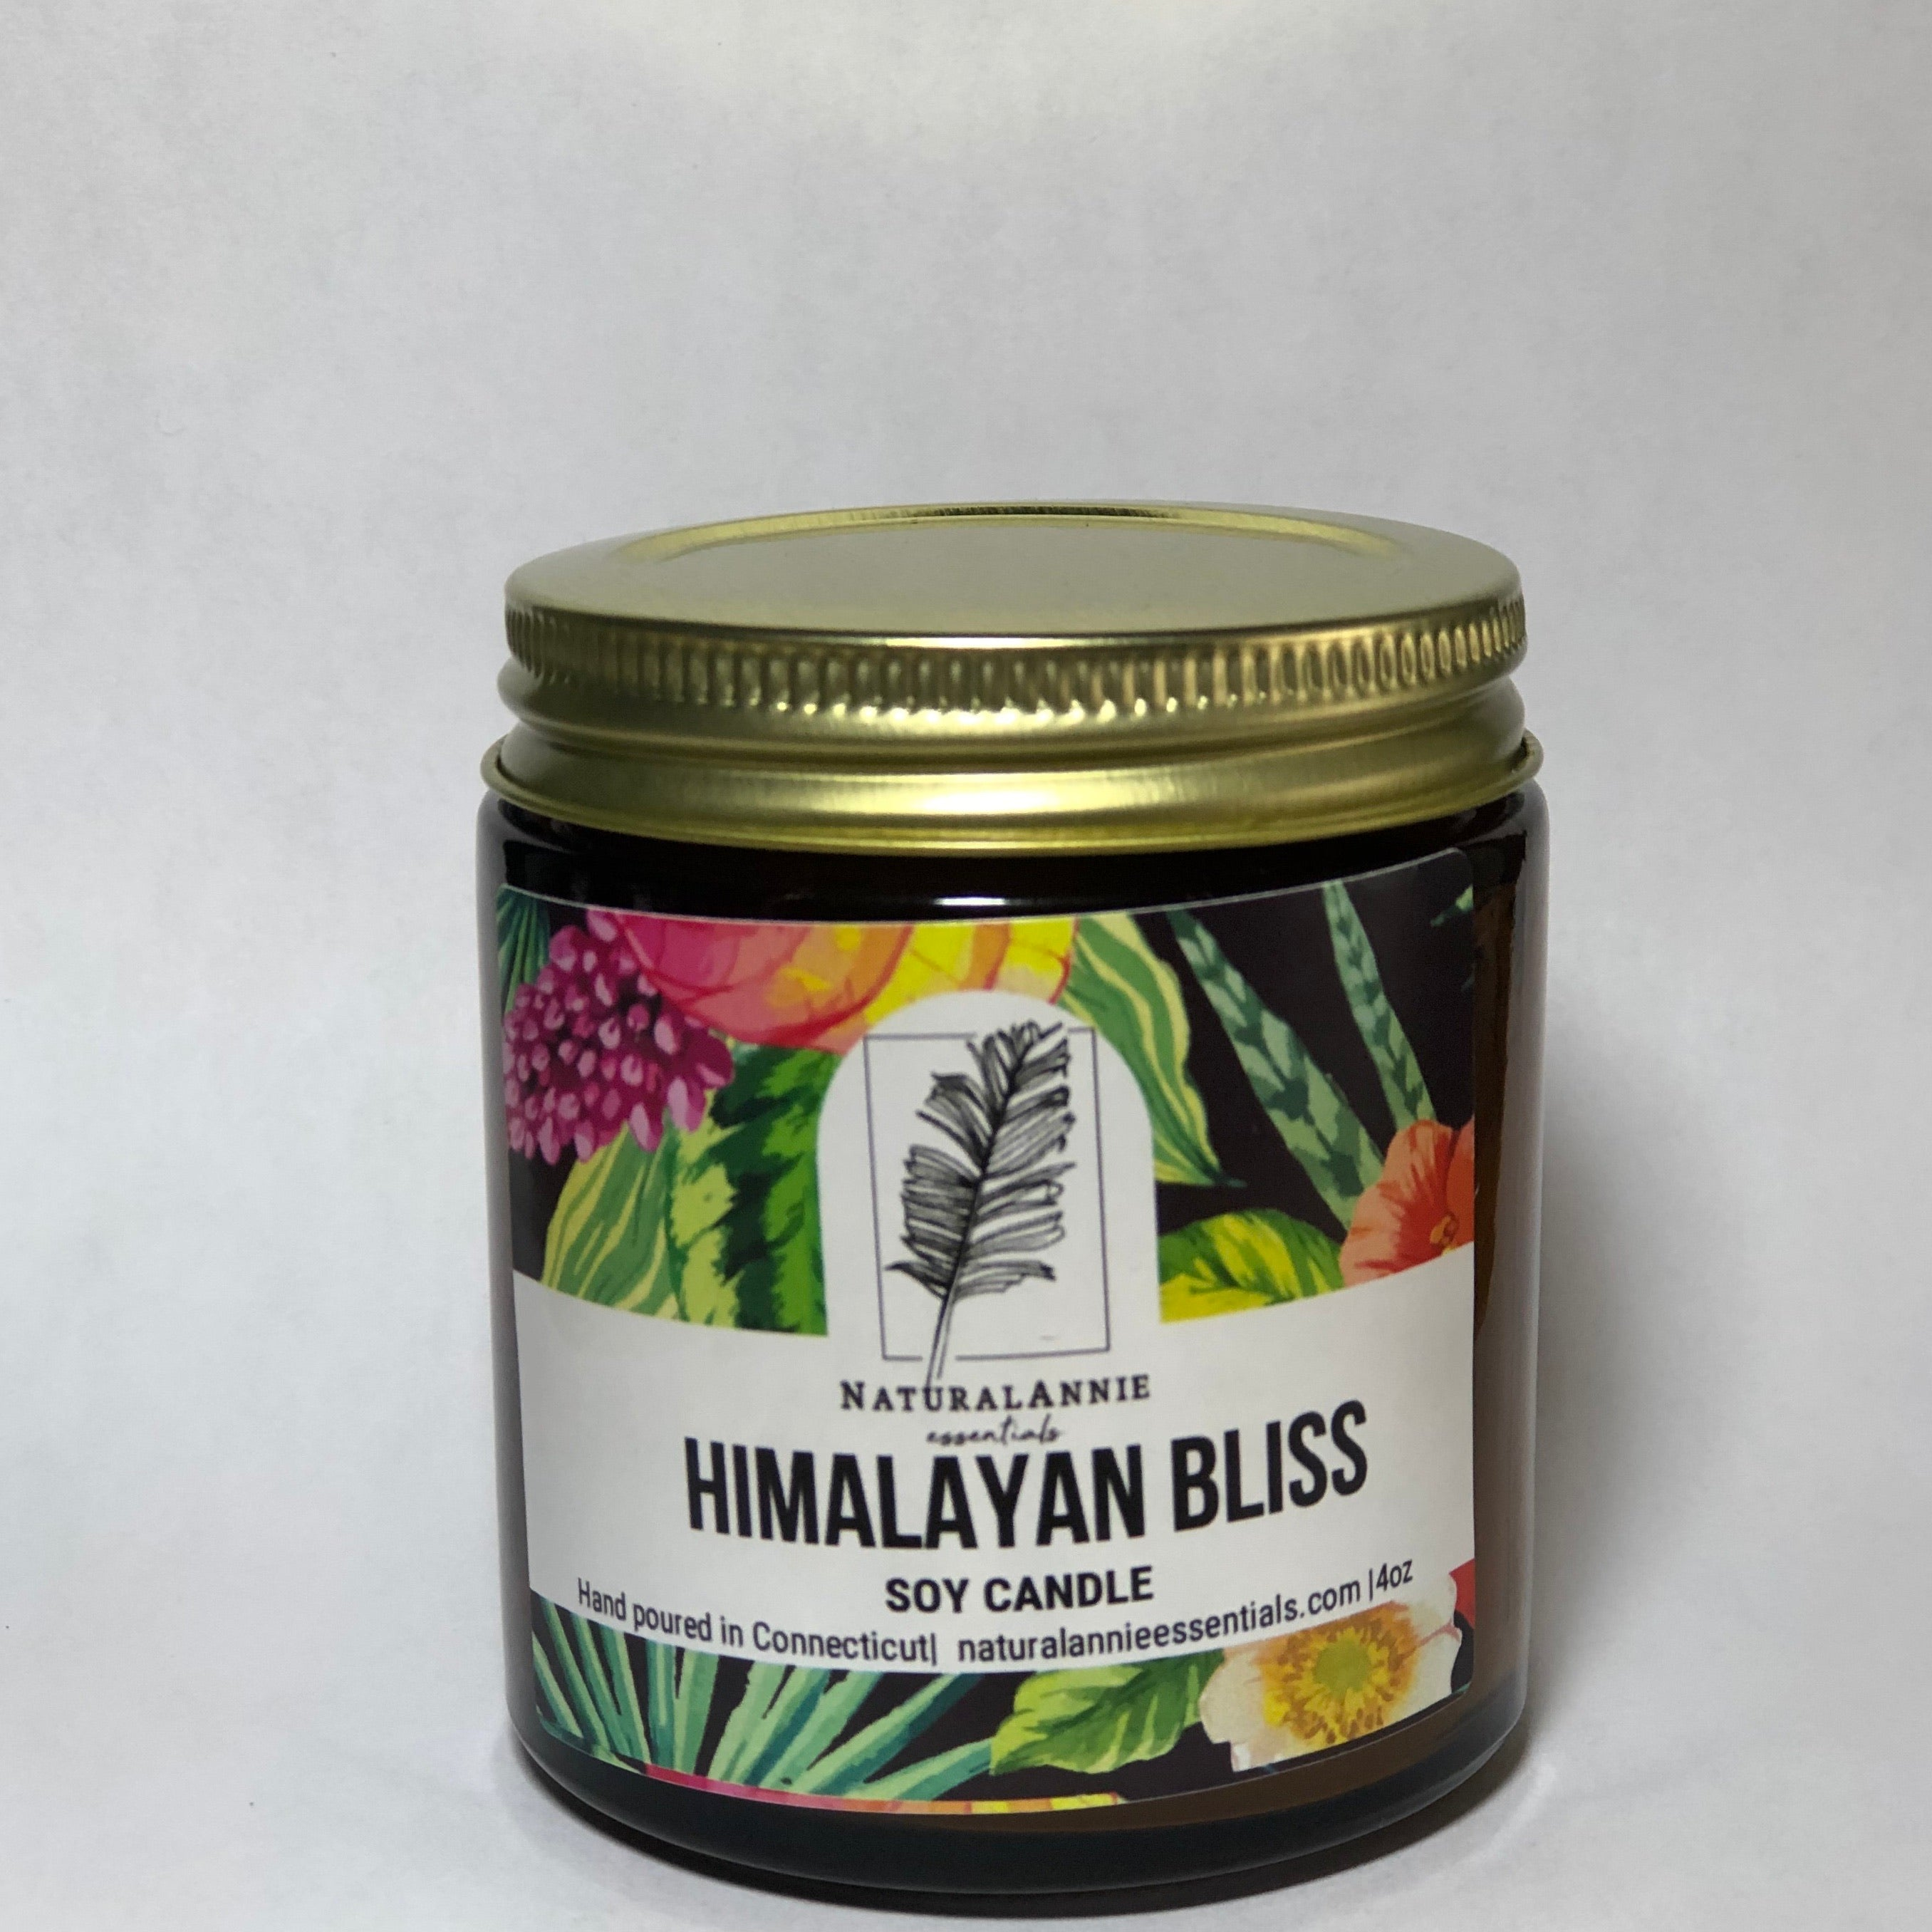 Himalayan Bliss Soy Candle